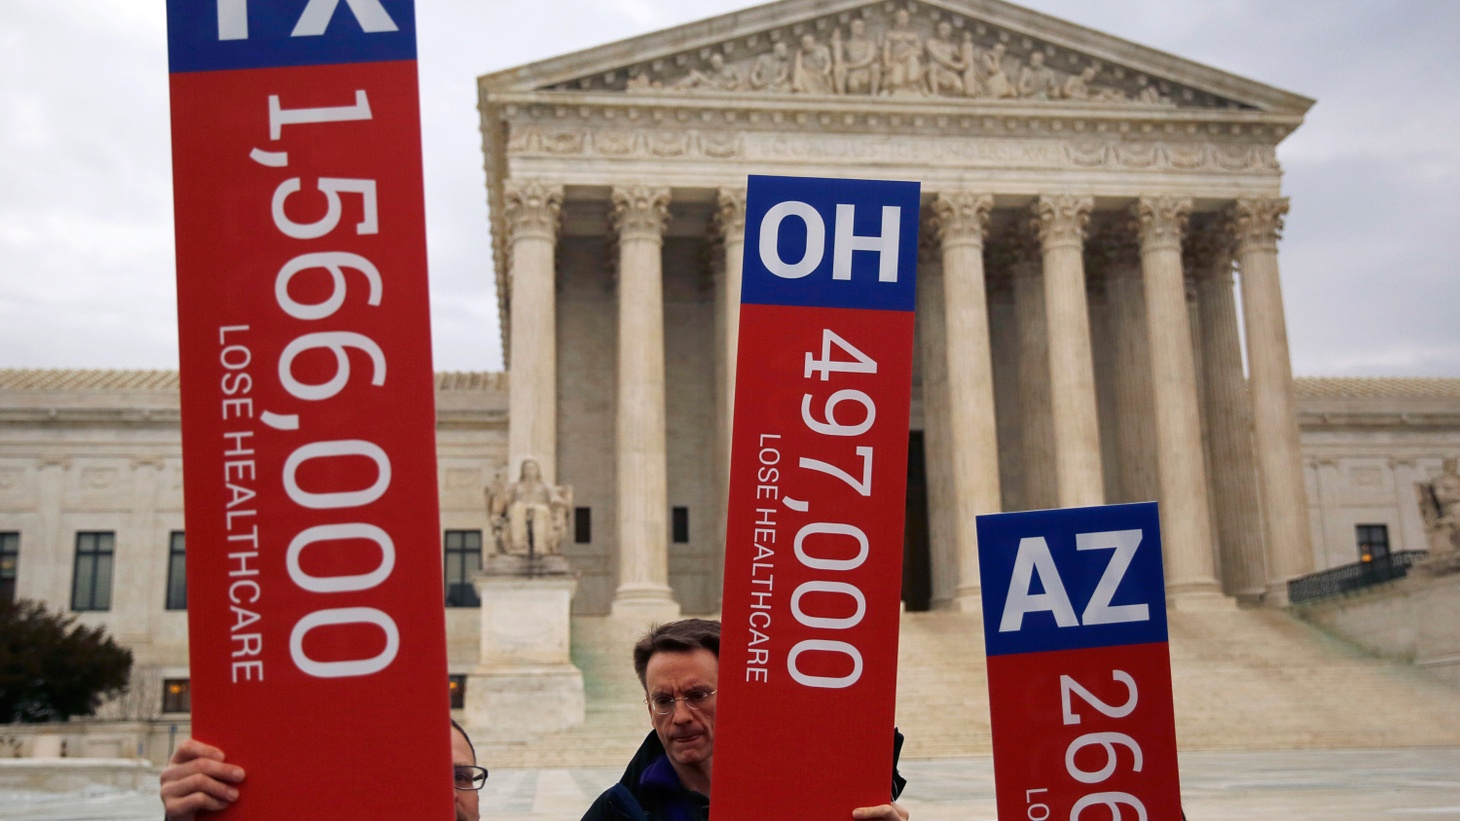 For the third time, the US Supreme Court is considering a challenge to the Affordable Care Act. Federal health insurance subsidies for seven million Americans will depend on how the Justices rule on arguments they heard today.